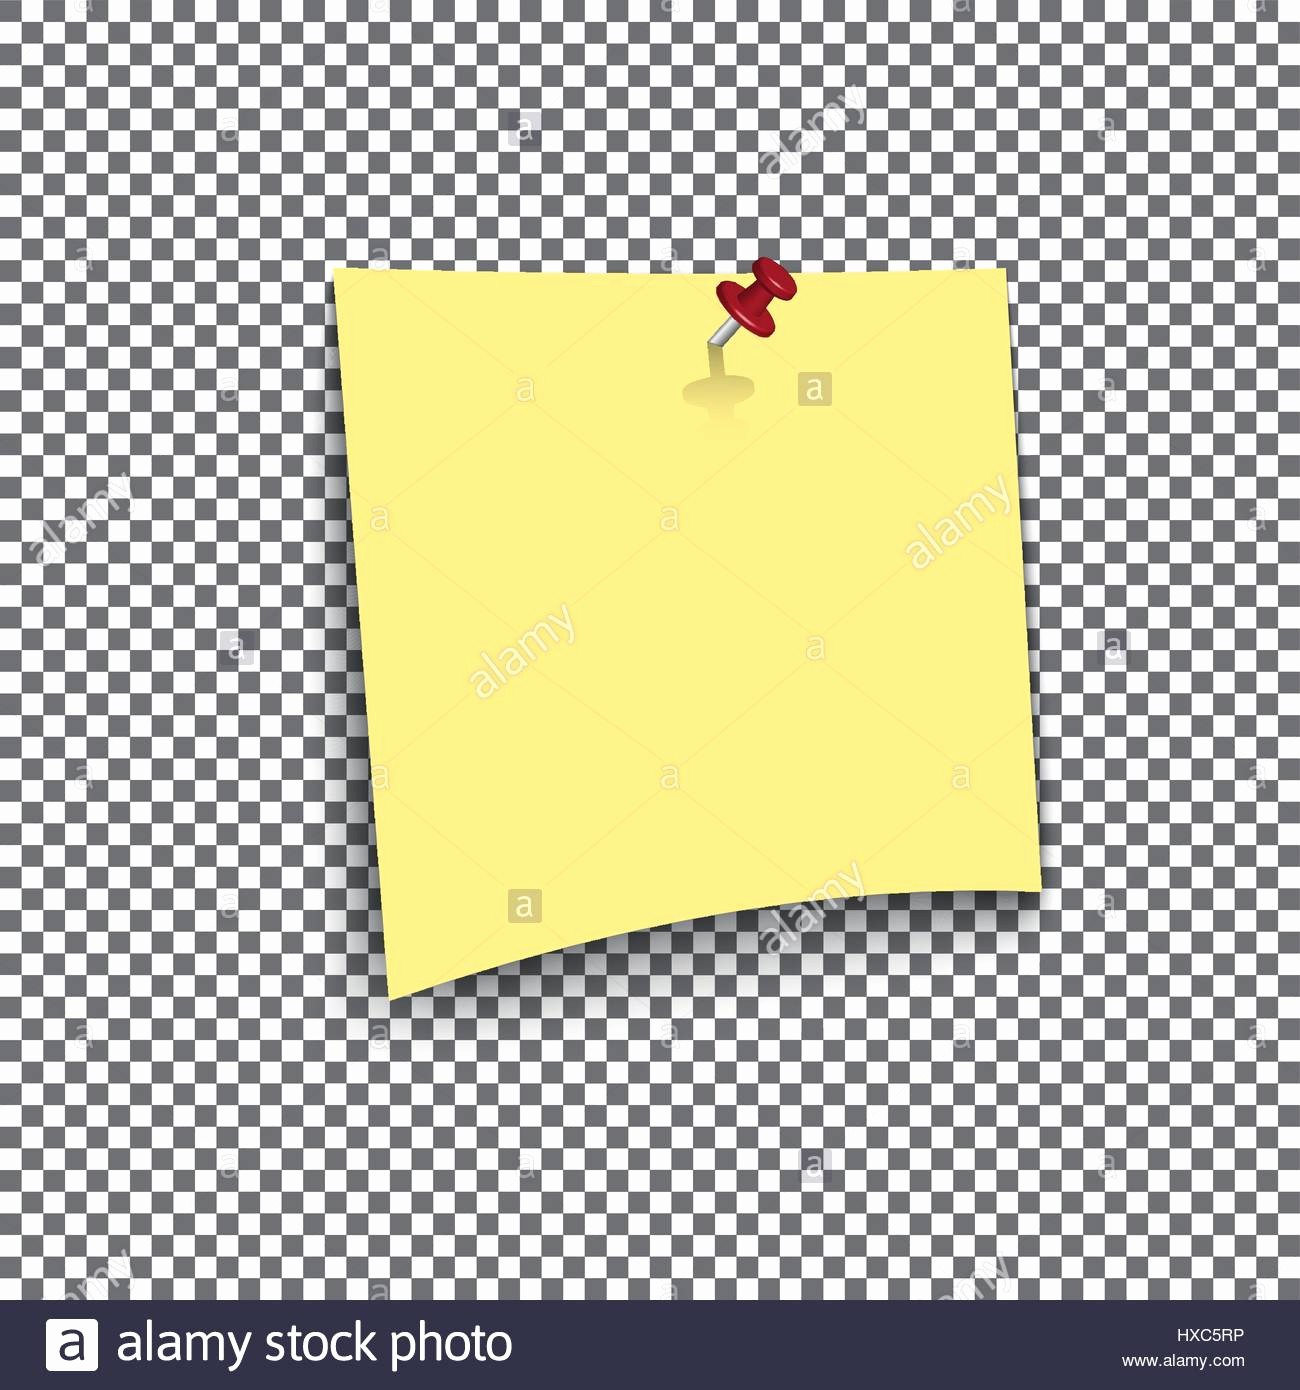 Sticky Note Template for Word Fresh List Of Synonyms and Antonyms Of the Word Sticky Note